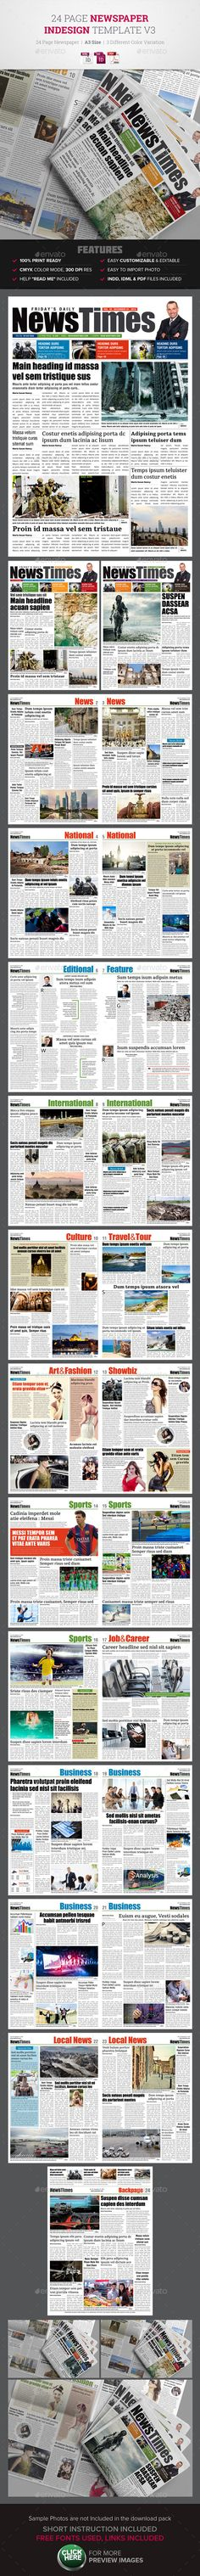 24 Page Newspaper InDesign v3 - Newsletters Print Templates Download here : https://graphicriver.net/item/24-page-newspaper-indesign-v3/12240434?s_rank=153&ref=Al-fatih